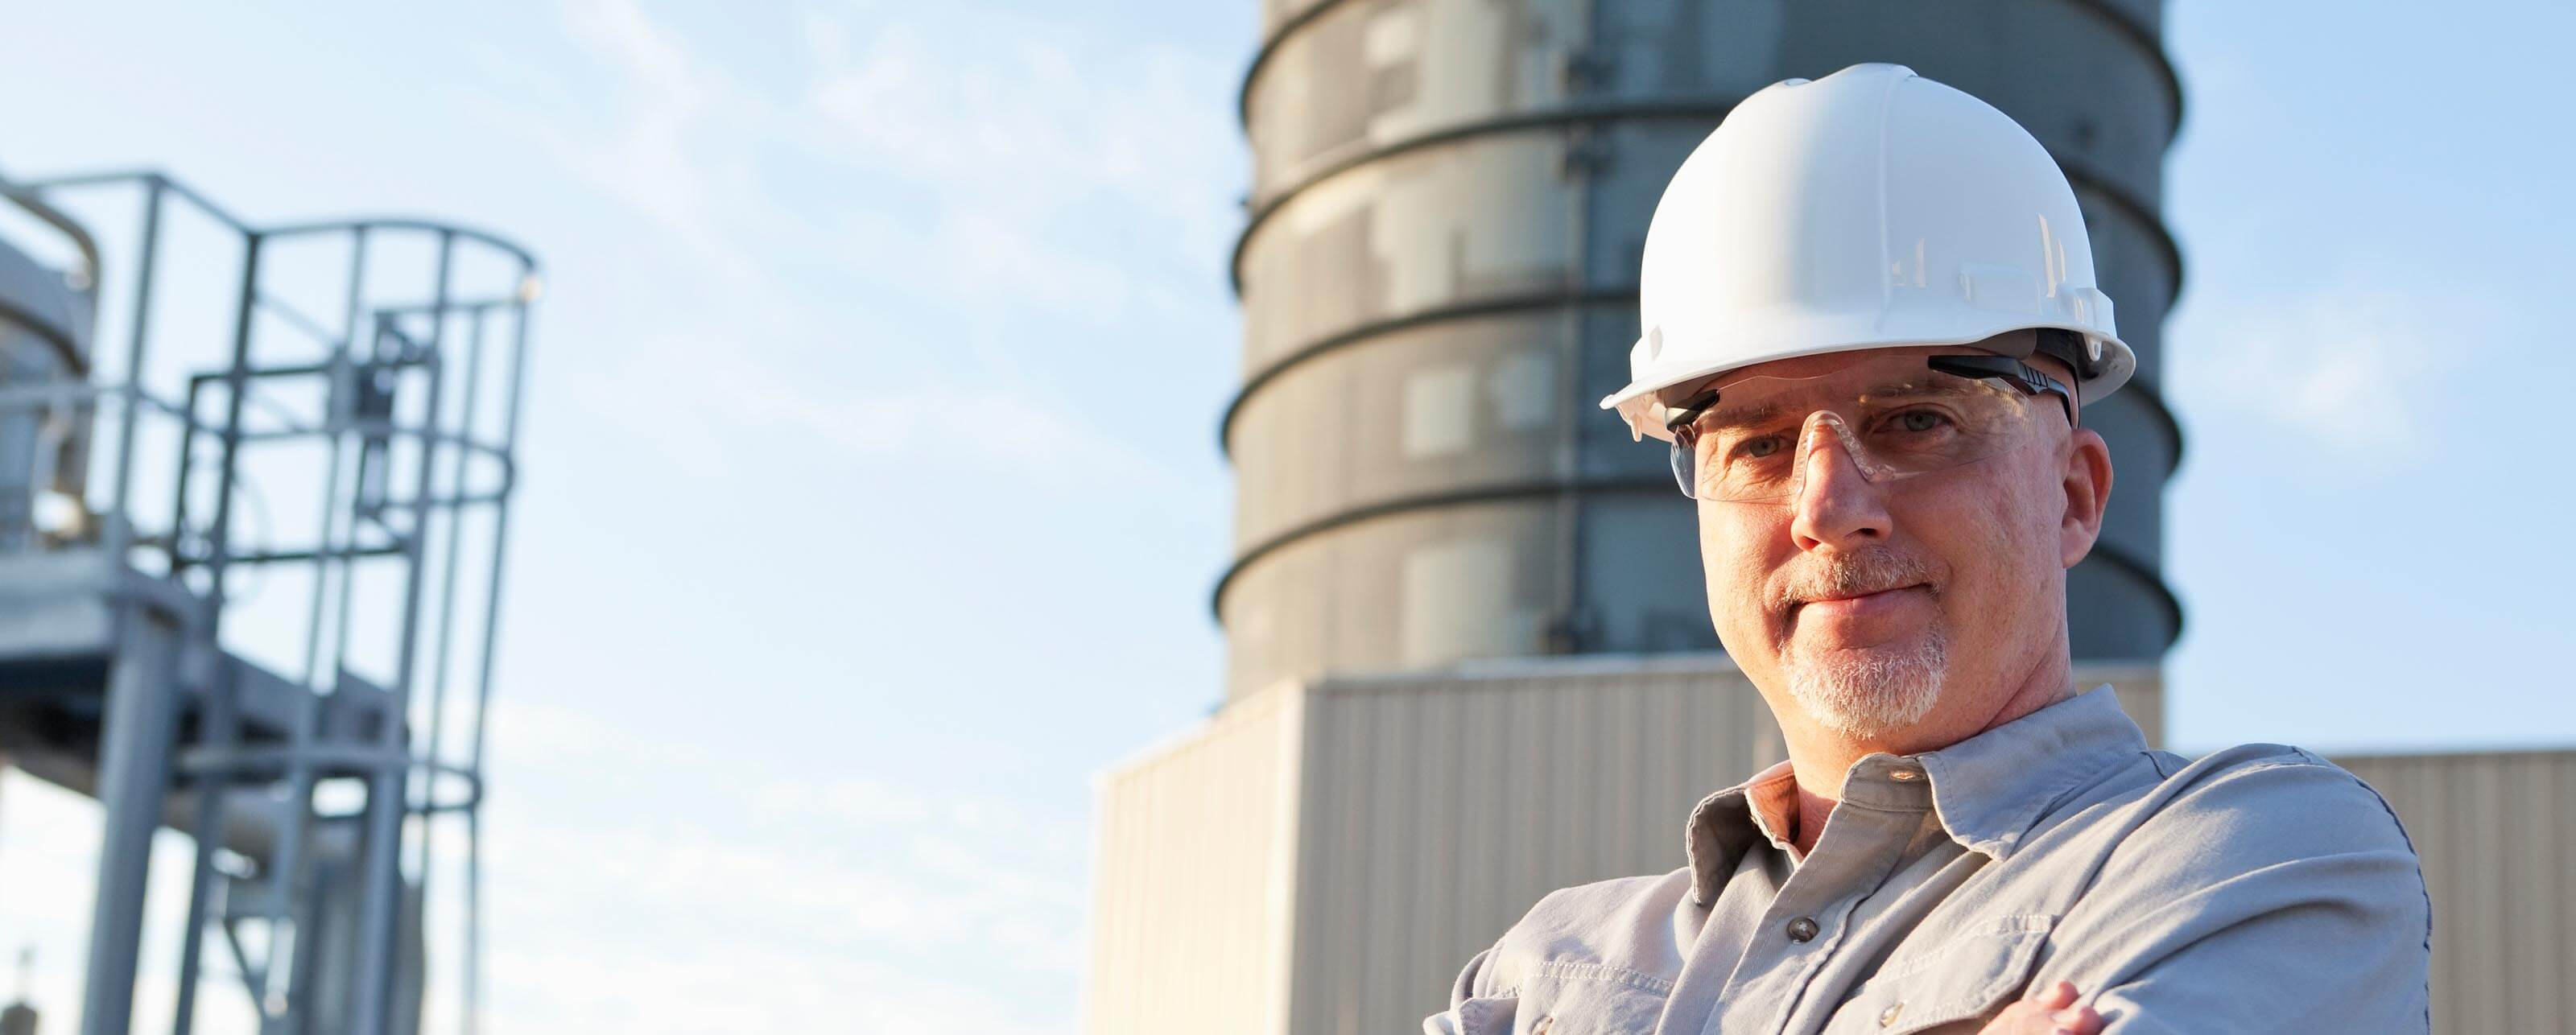 Power generation utility engineer uses GE software for operations